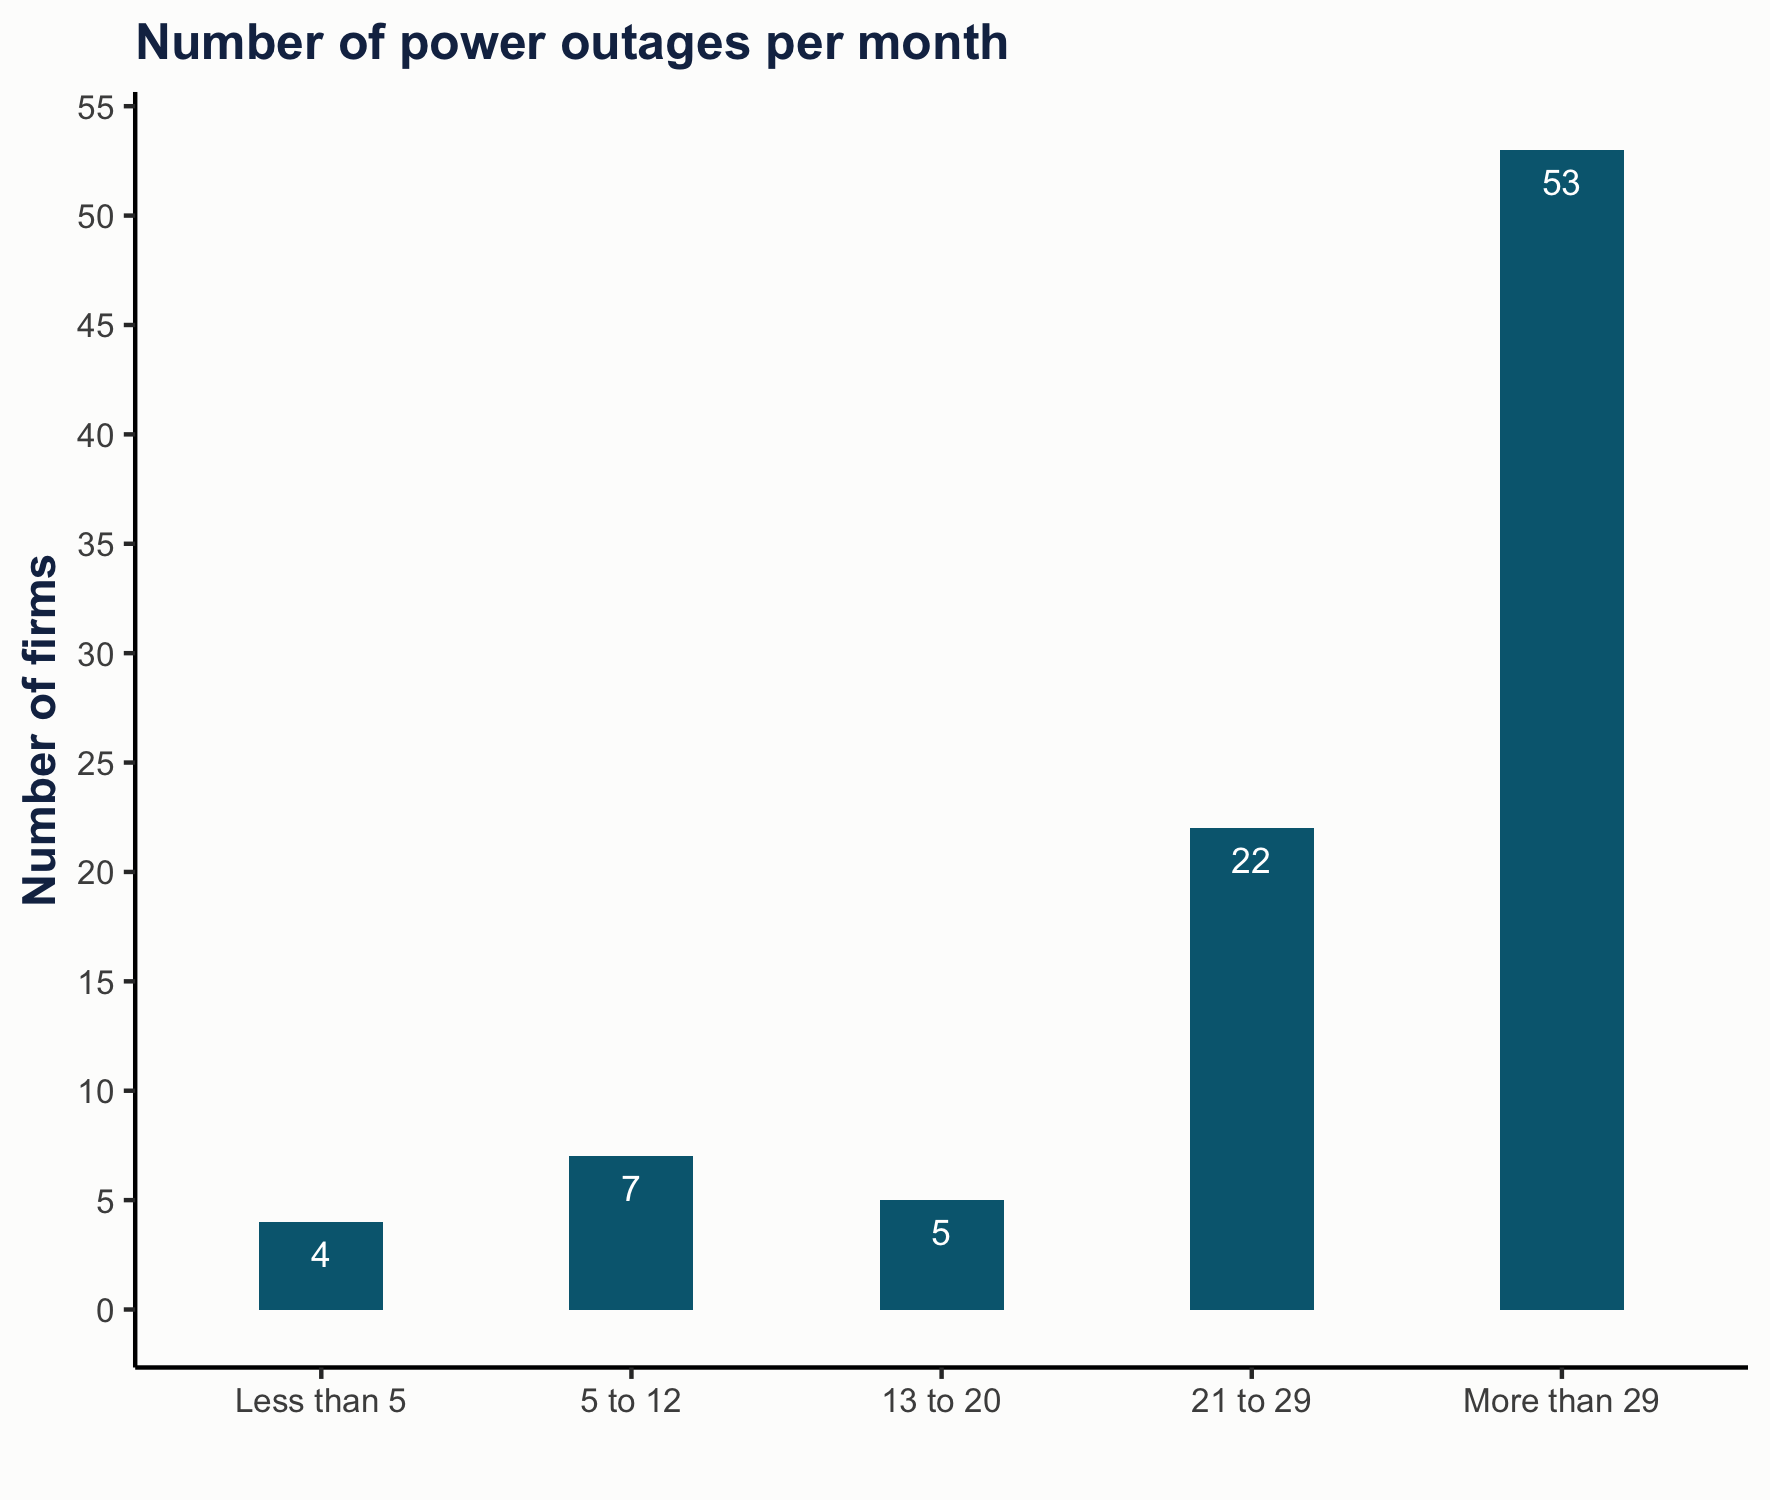 Chart showing number of power outages per month